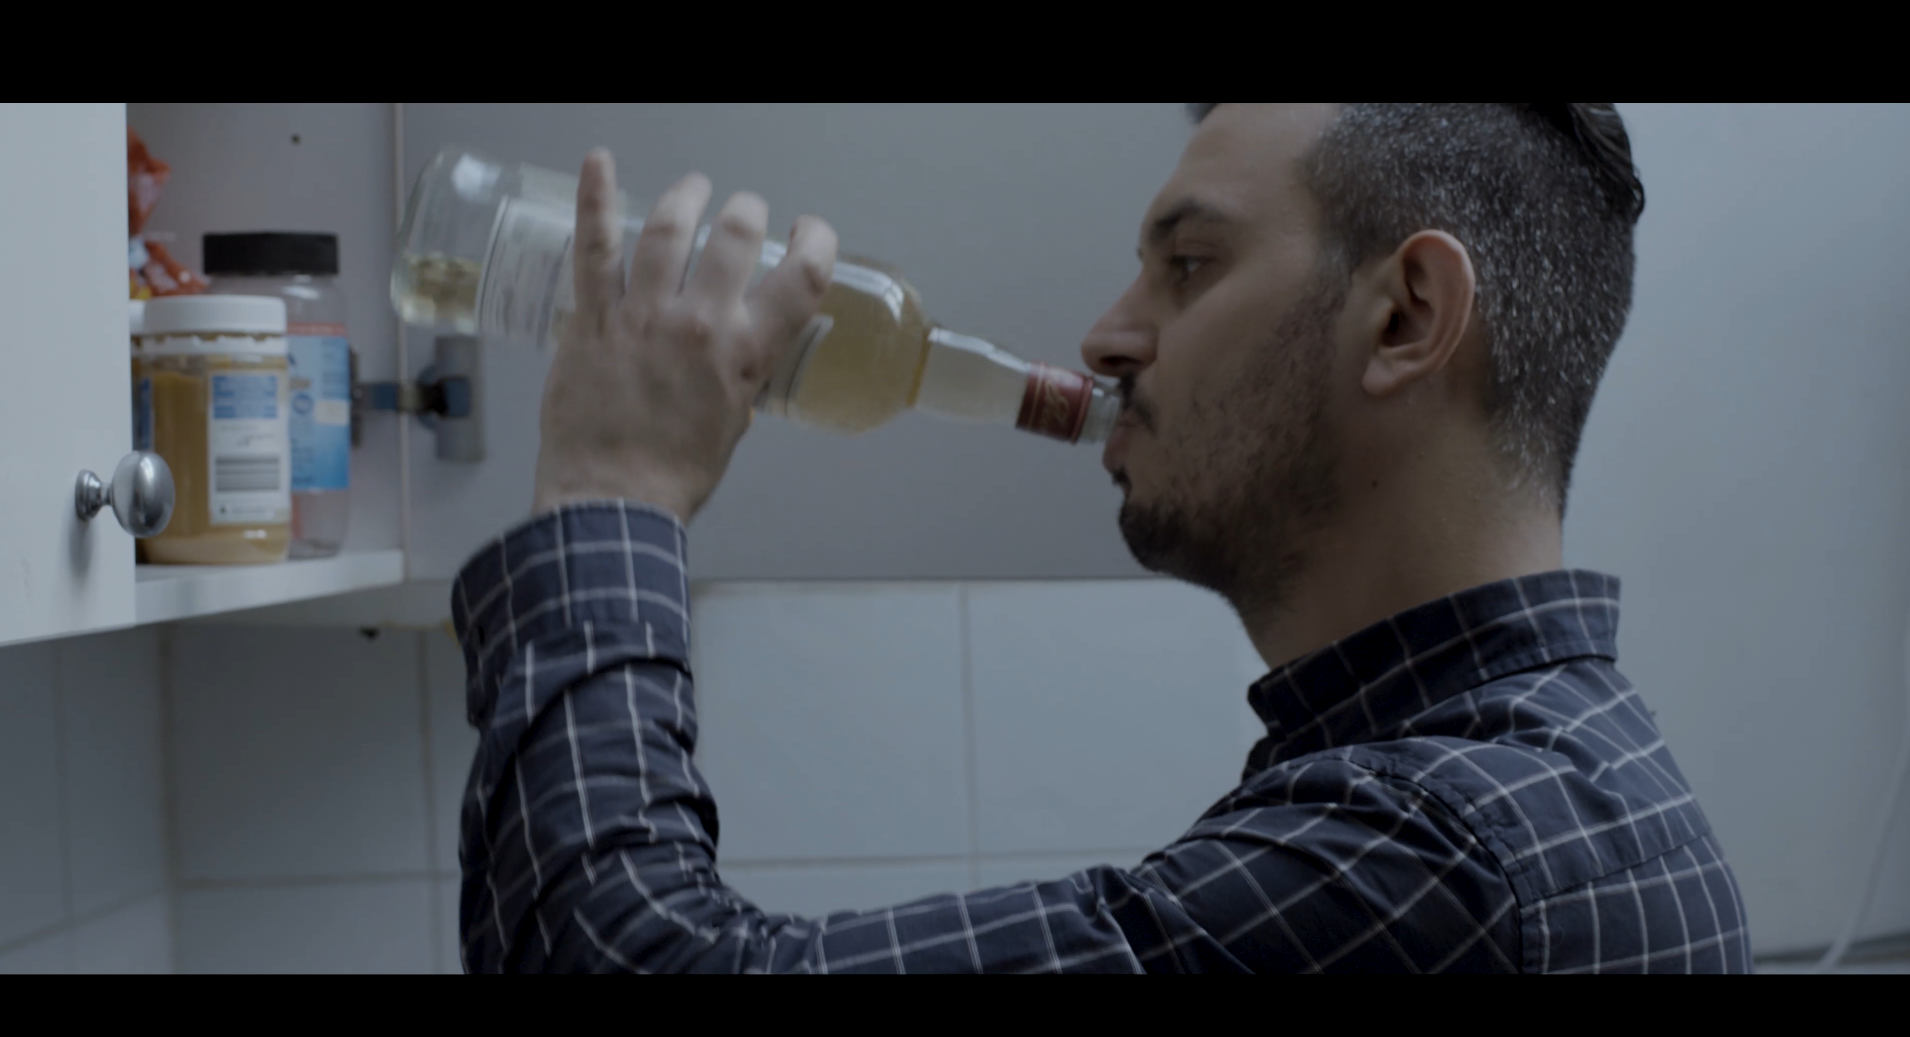 Sc3. Anthony drinking at home alone.png